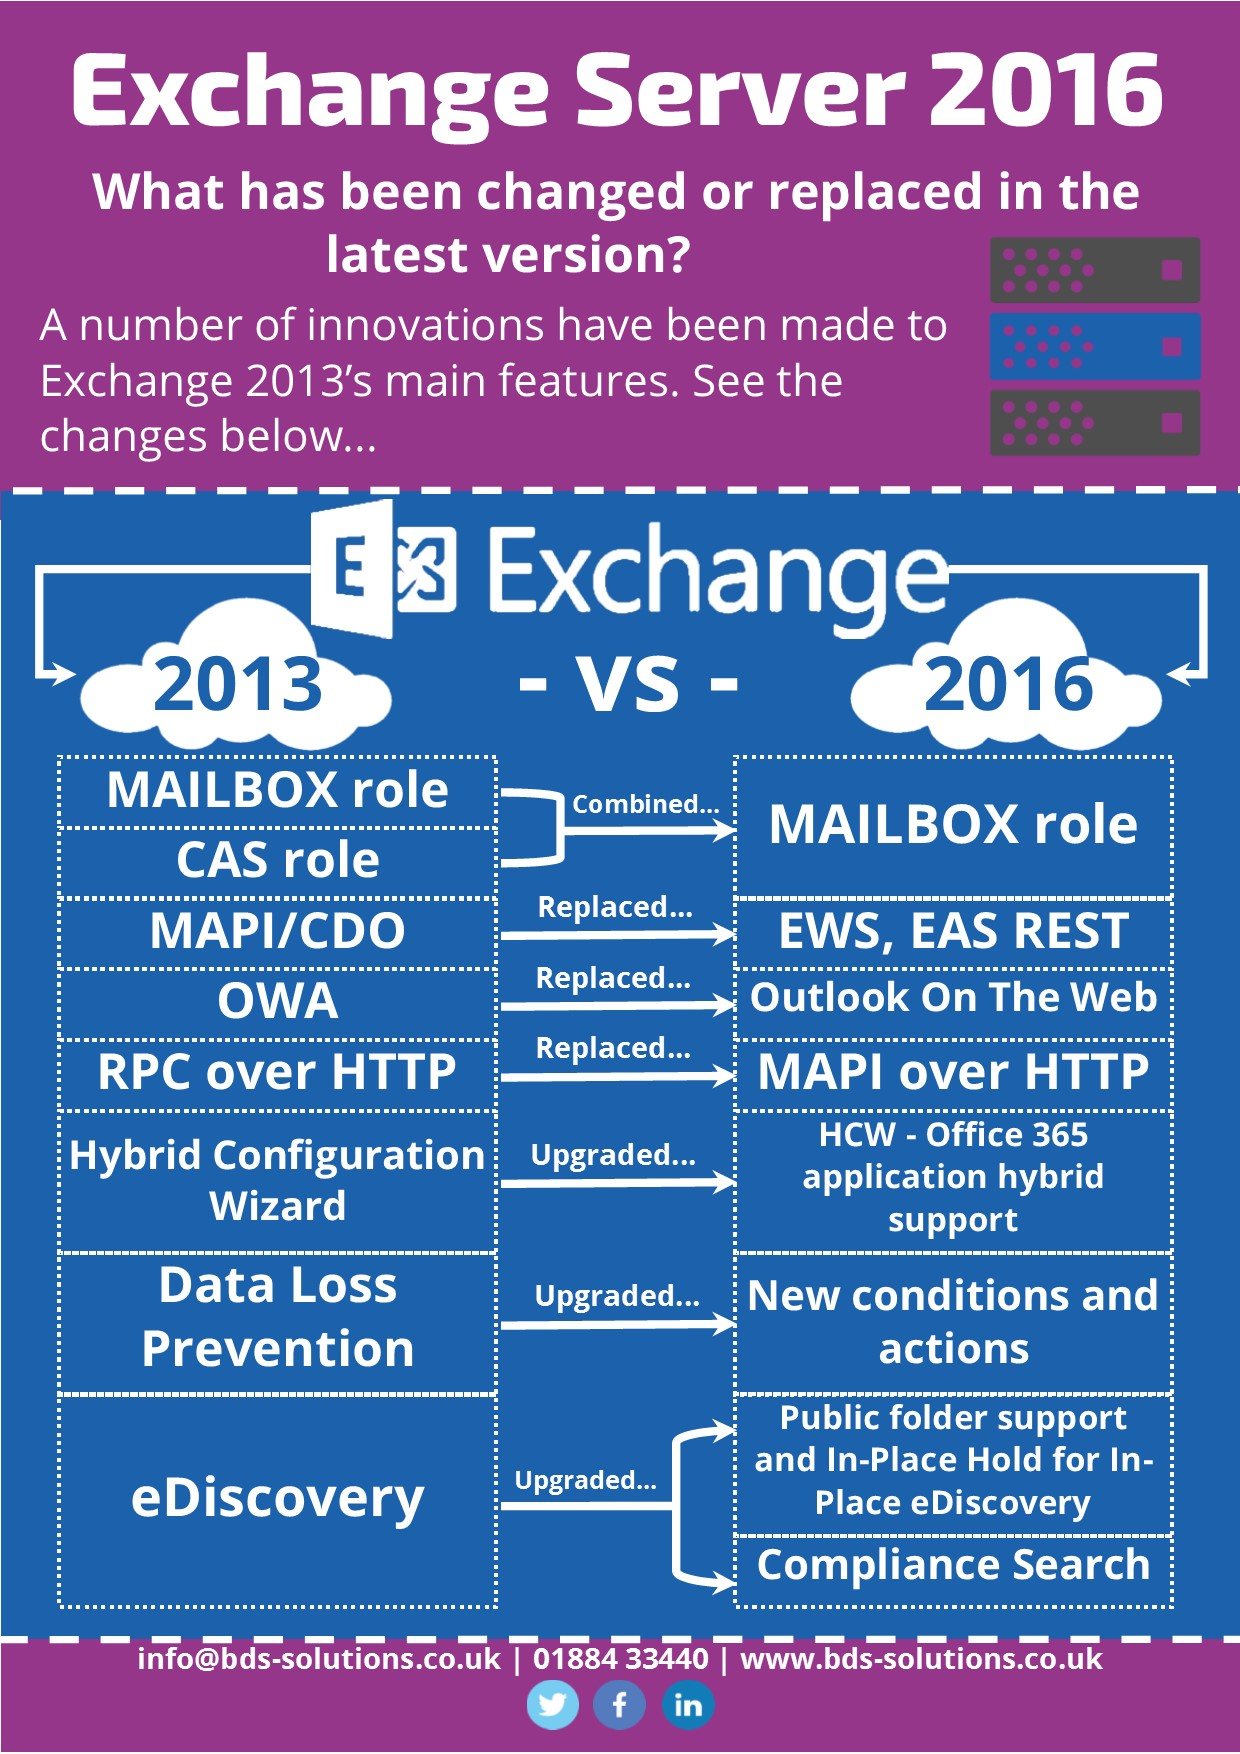 BDS Solutions | What's new in Exchange 2016?